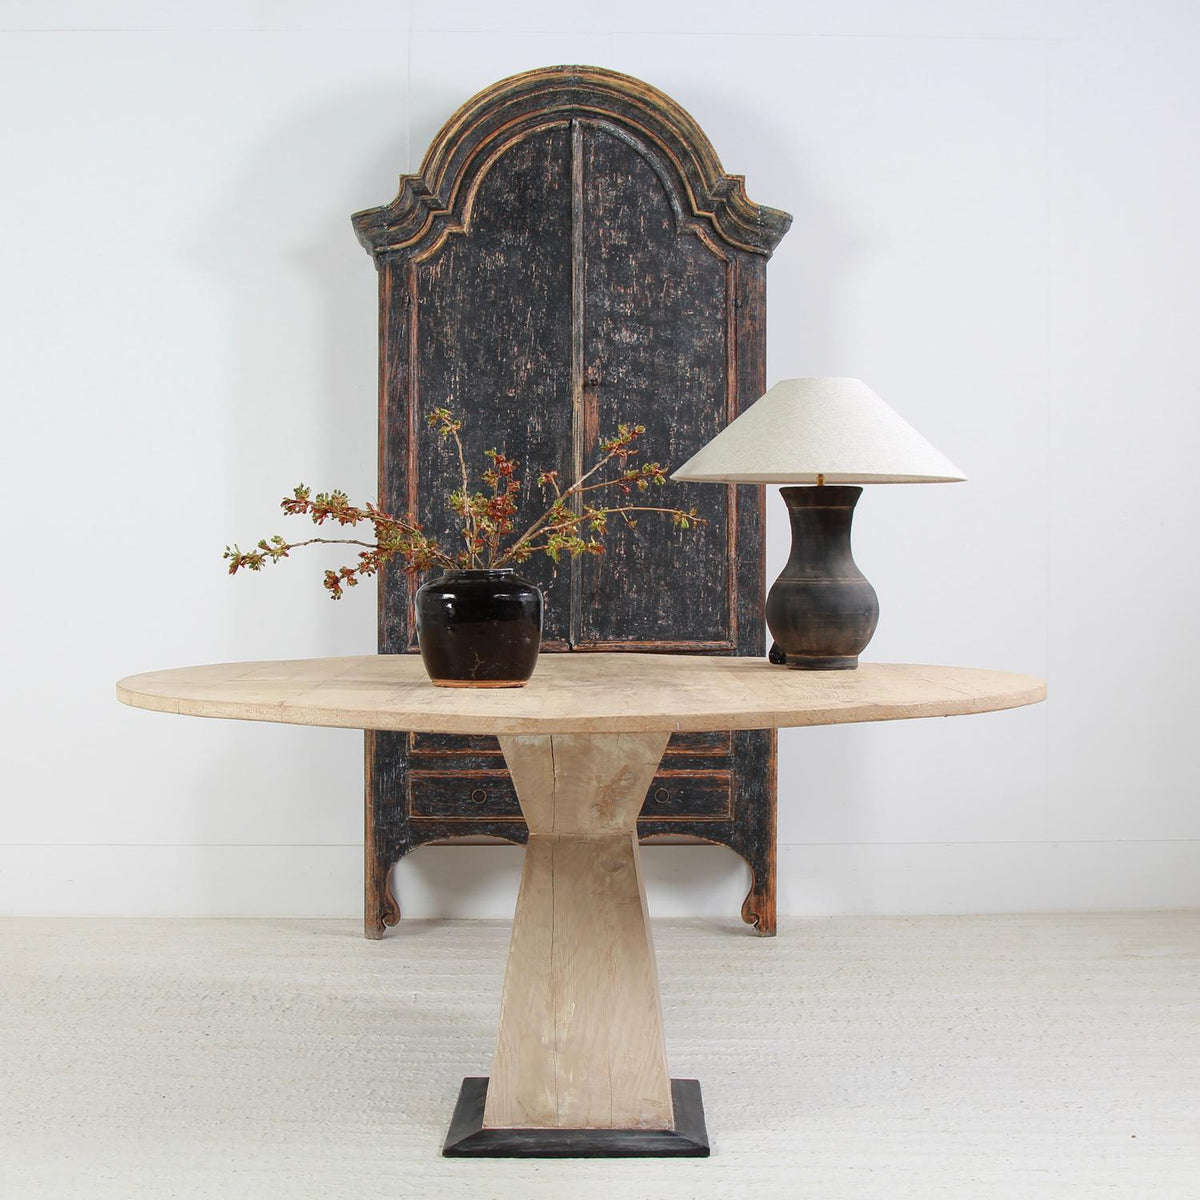 Chinese Han Style Lamp with Belgian Linen Shade